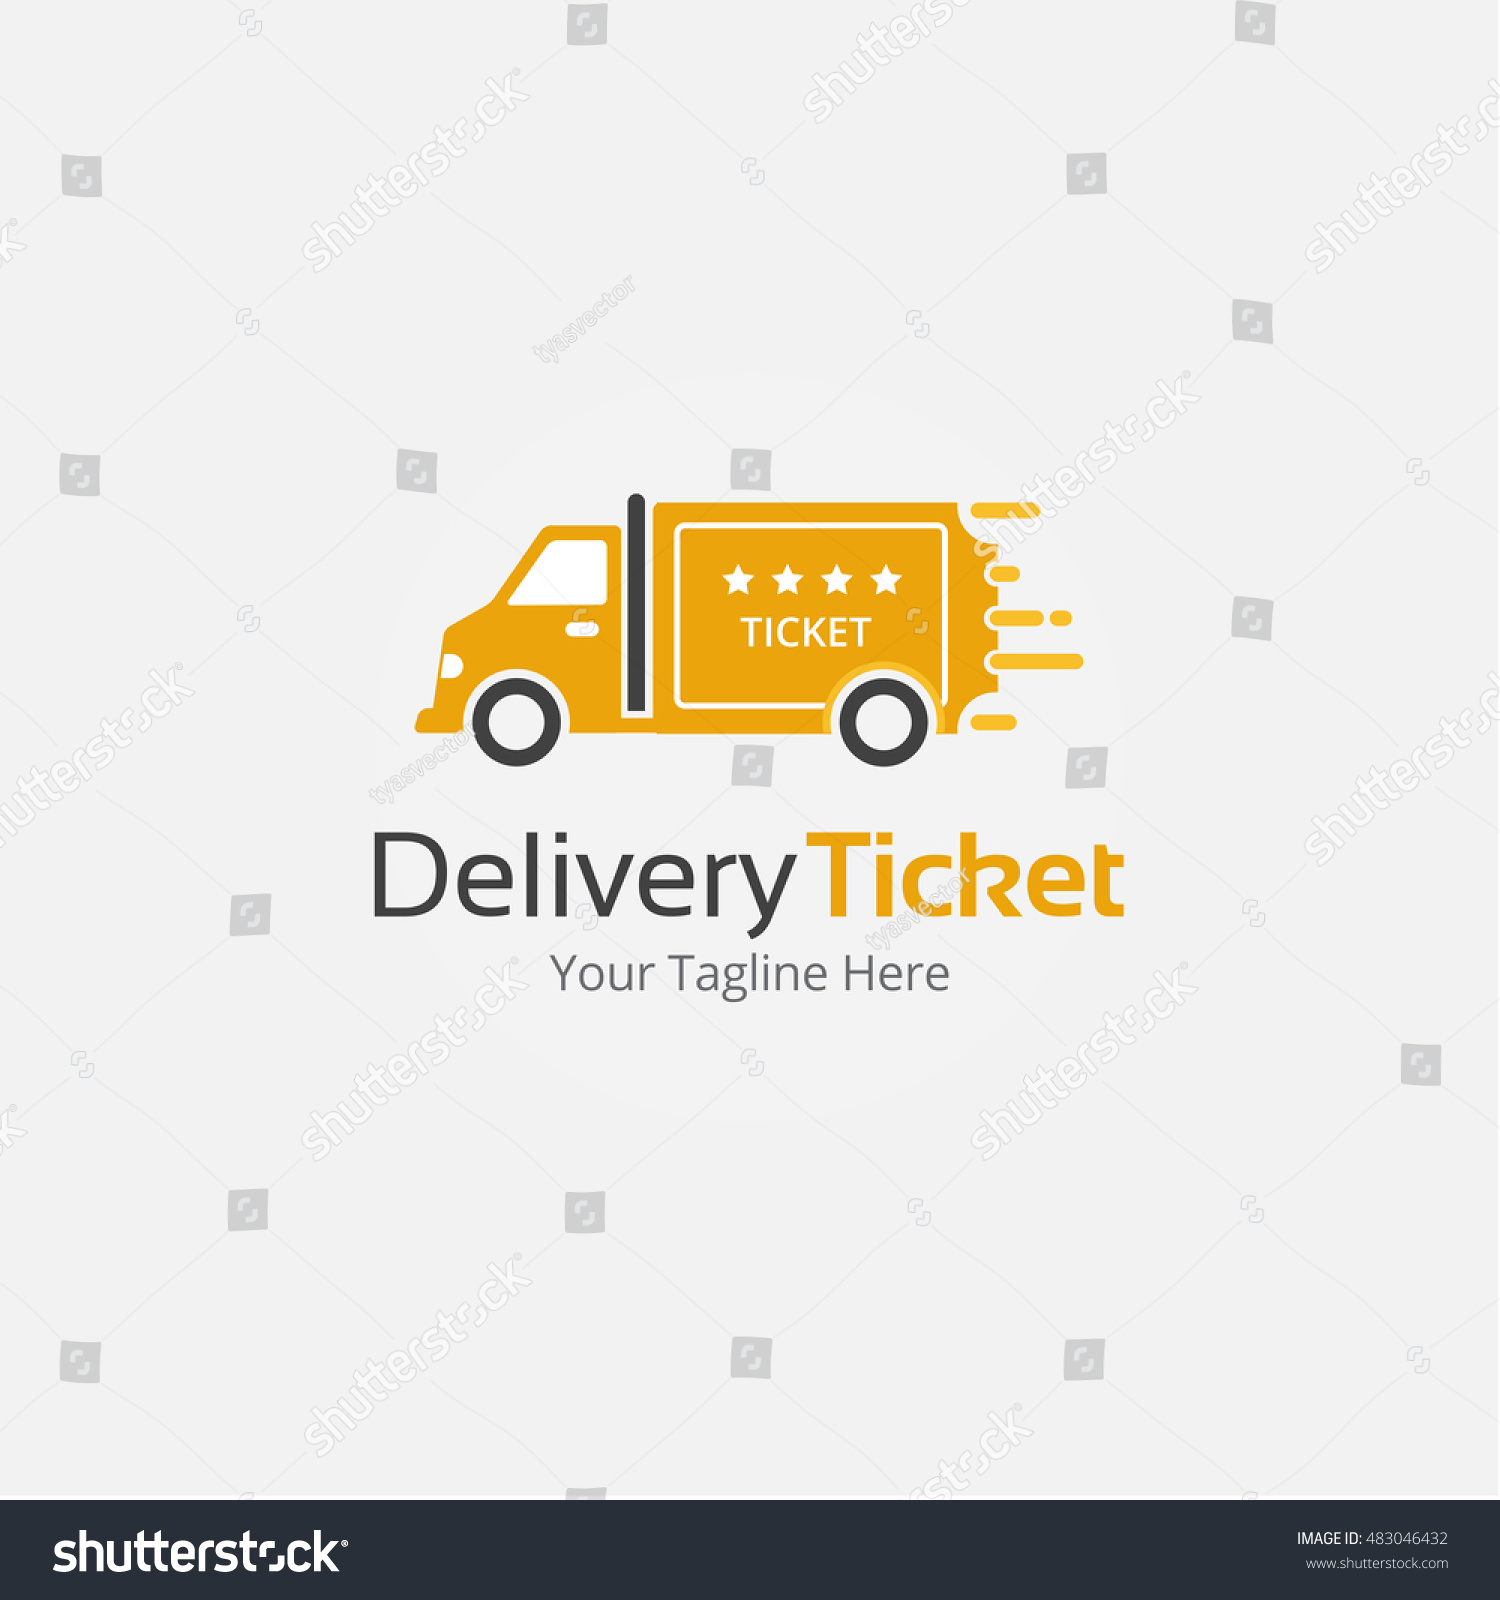 delivery ticket logo template stock vector royalty free 483046432